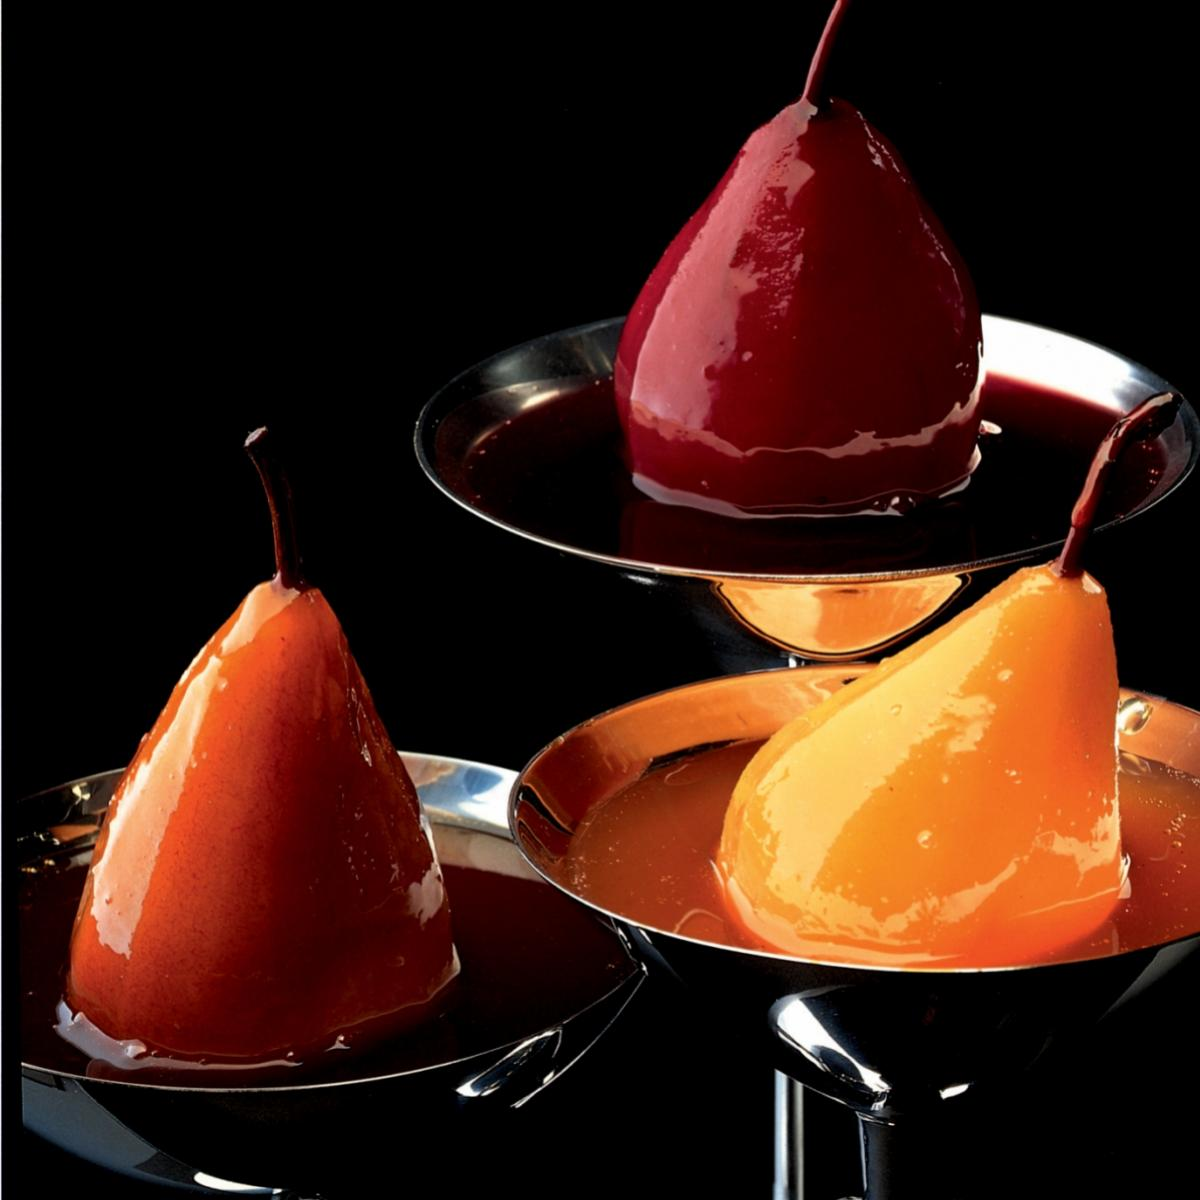 A picture of Delia's Pears Baked in Marsala Wine recipe